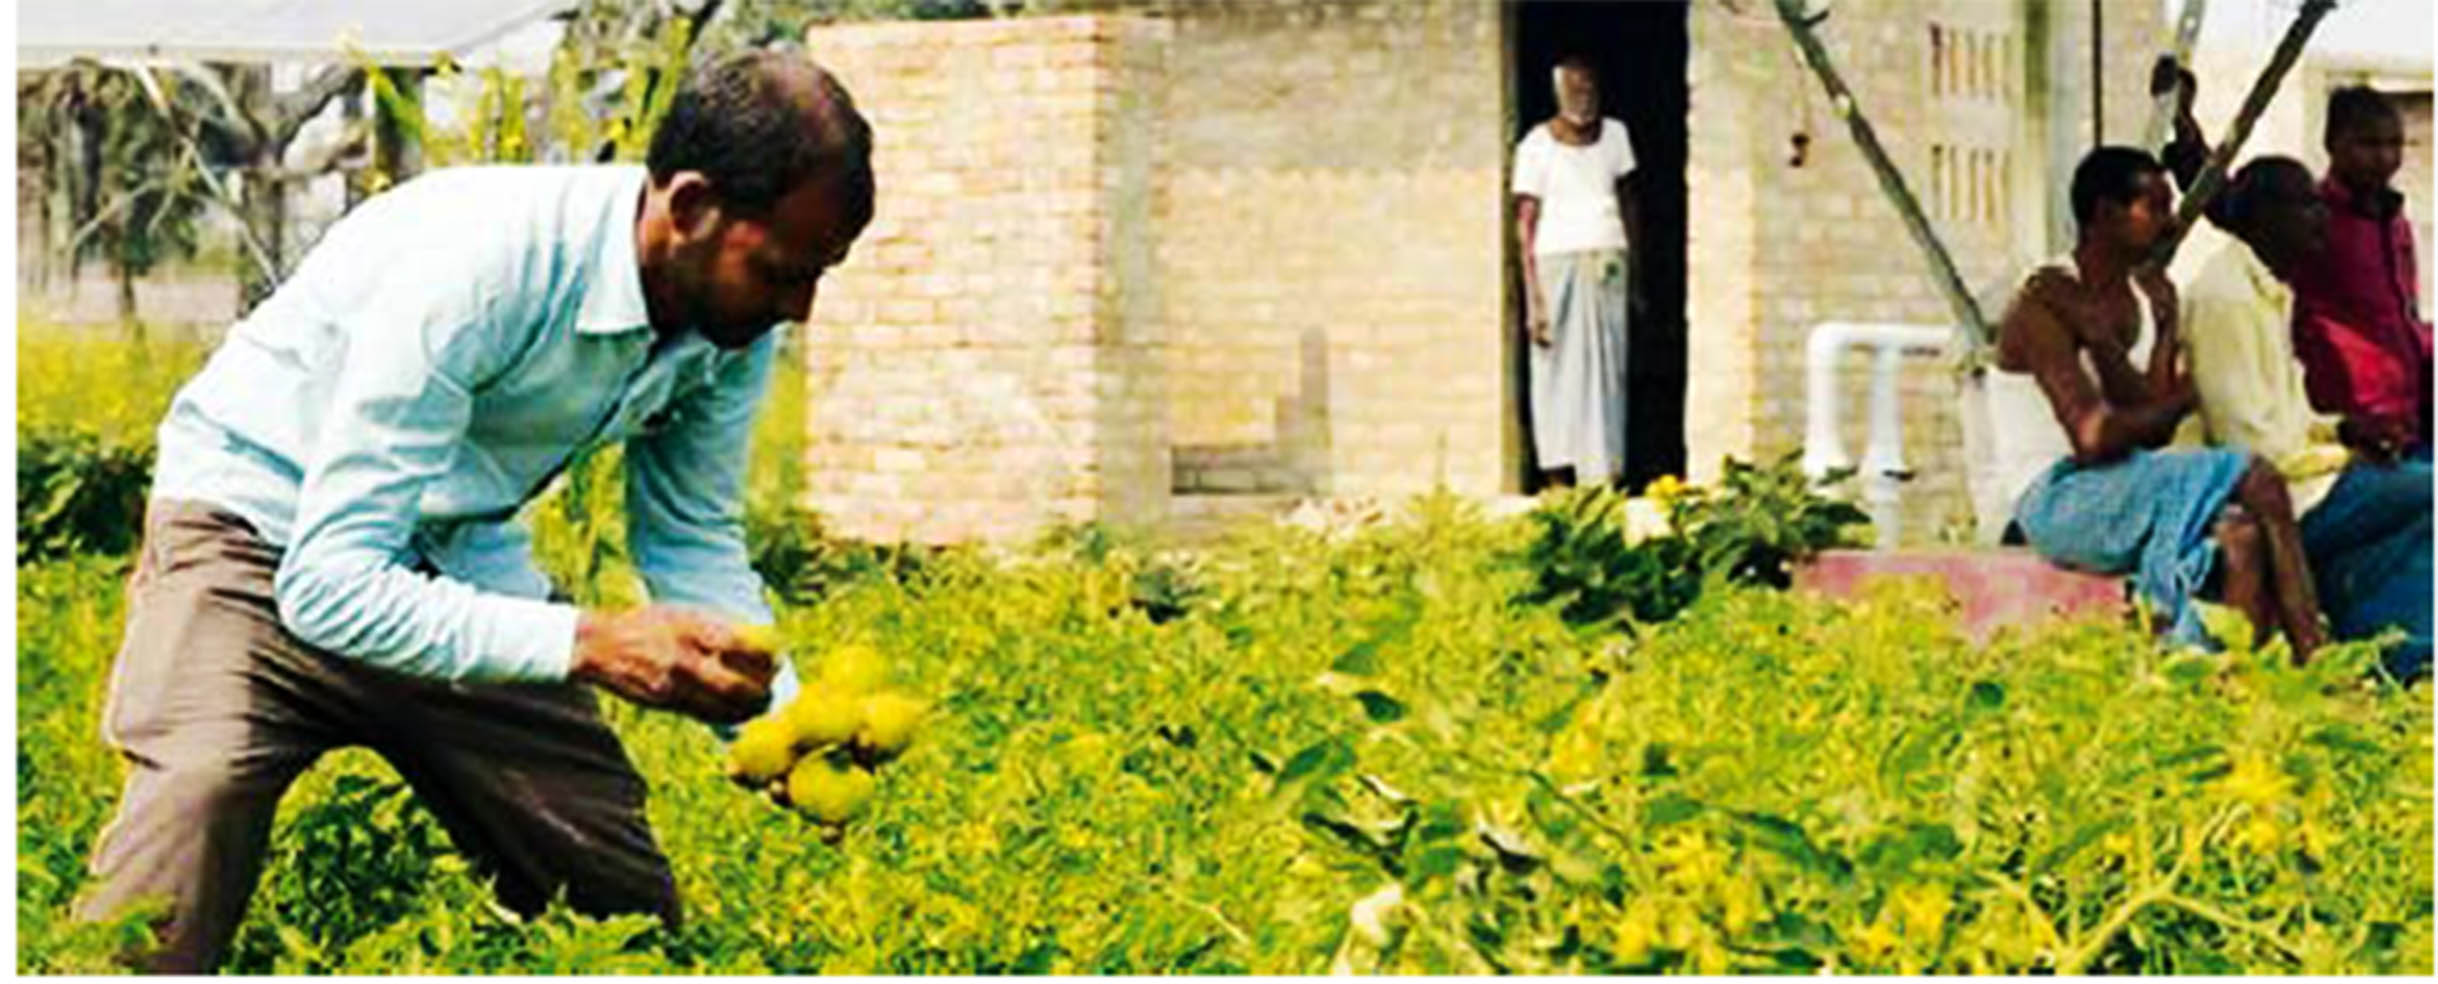 The average returns for vegetable cultivation in Chak Haji turns out to be Rs 79,179 per ha for one crop. (Image: AKRSP)